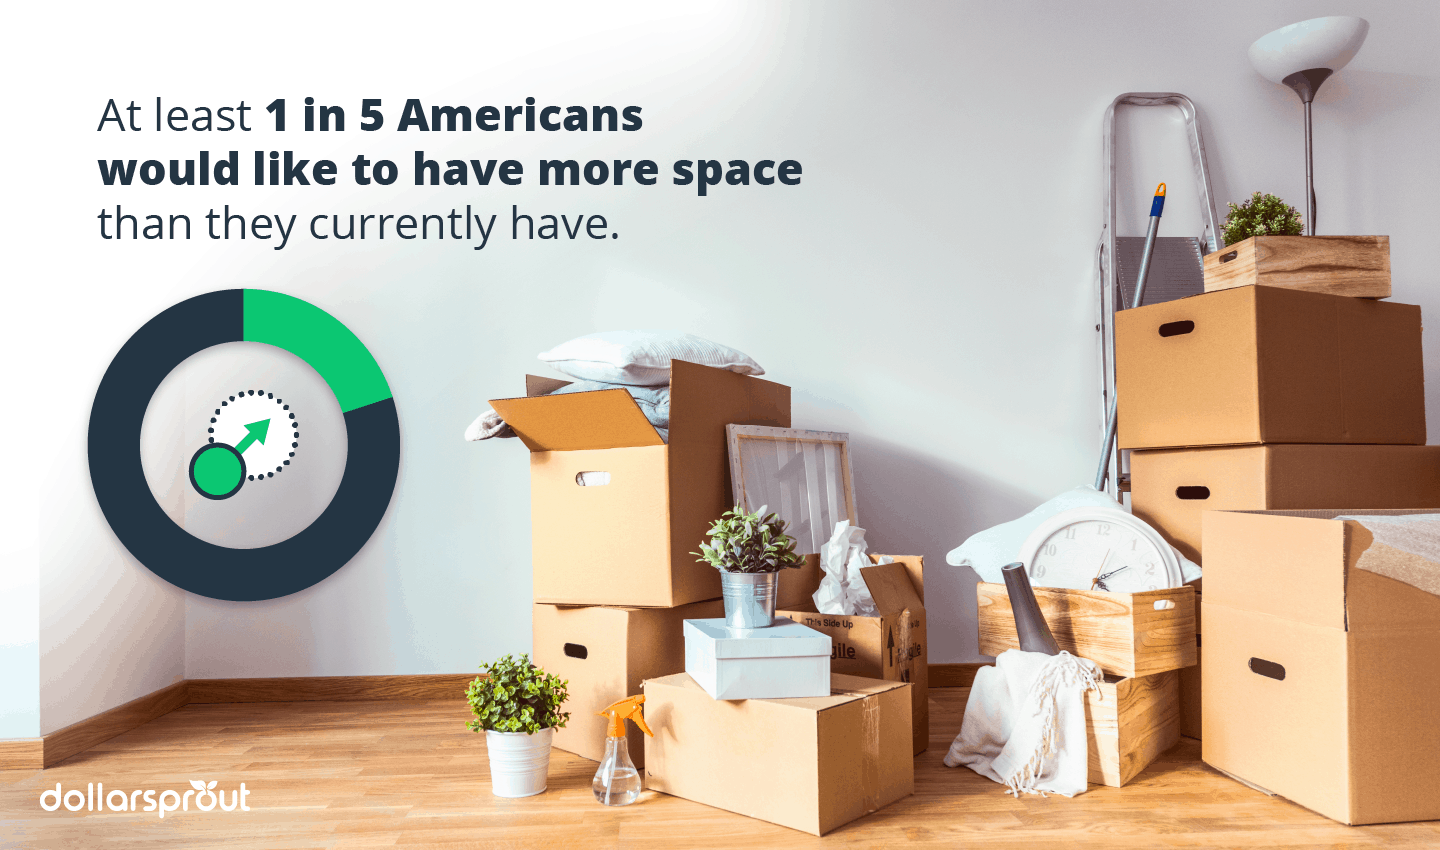 1 in 5 Americans would like to have more space